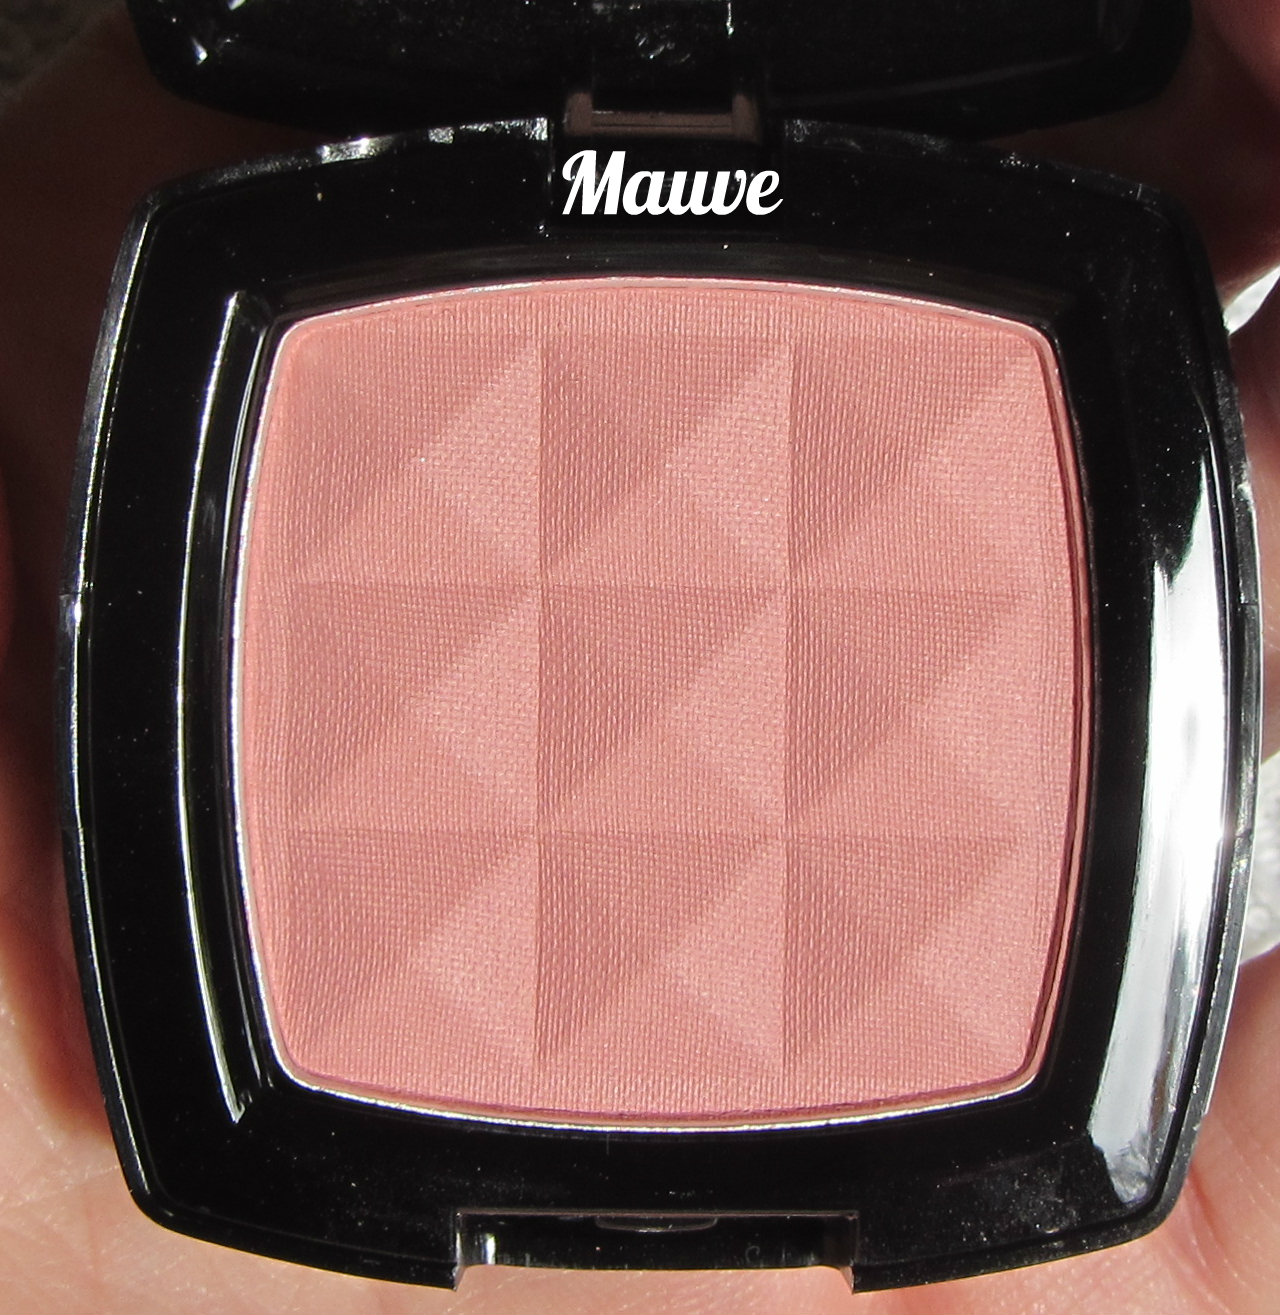 *Nina's Bargain Beauty*: NYX Powder Blush In Mauve